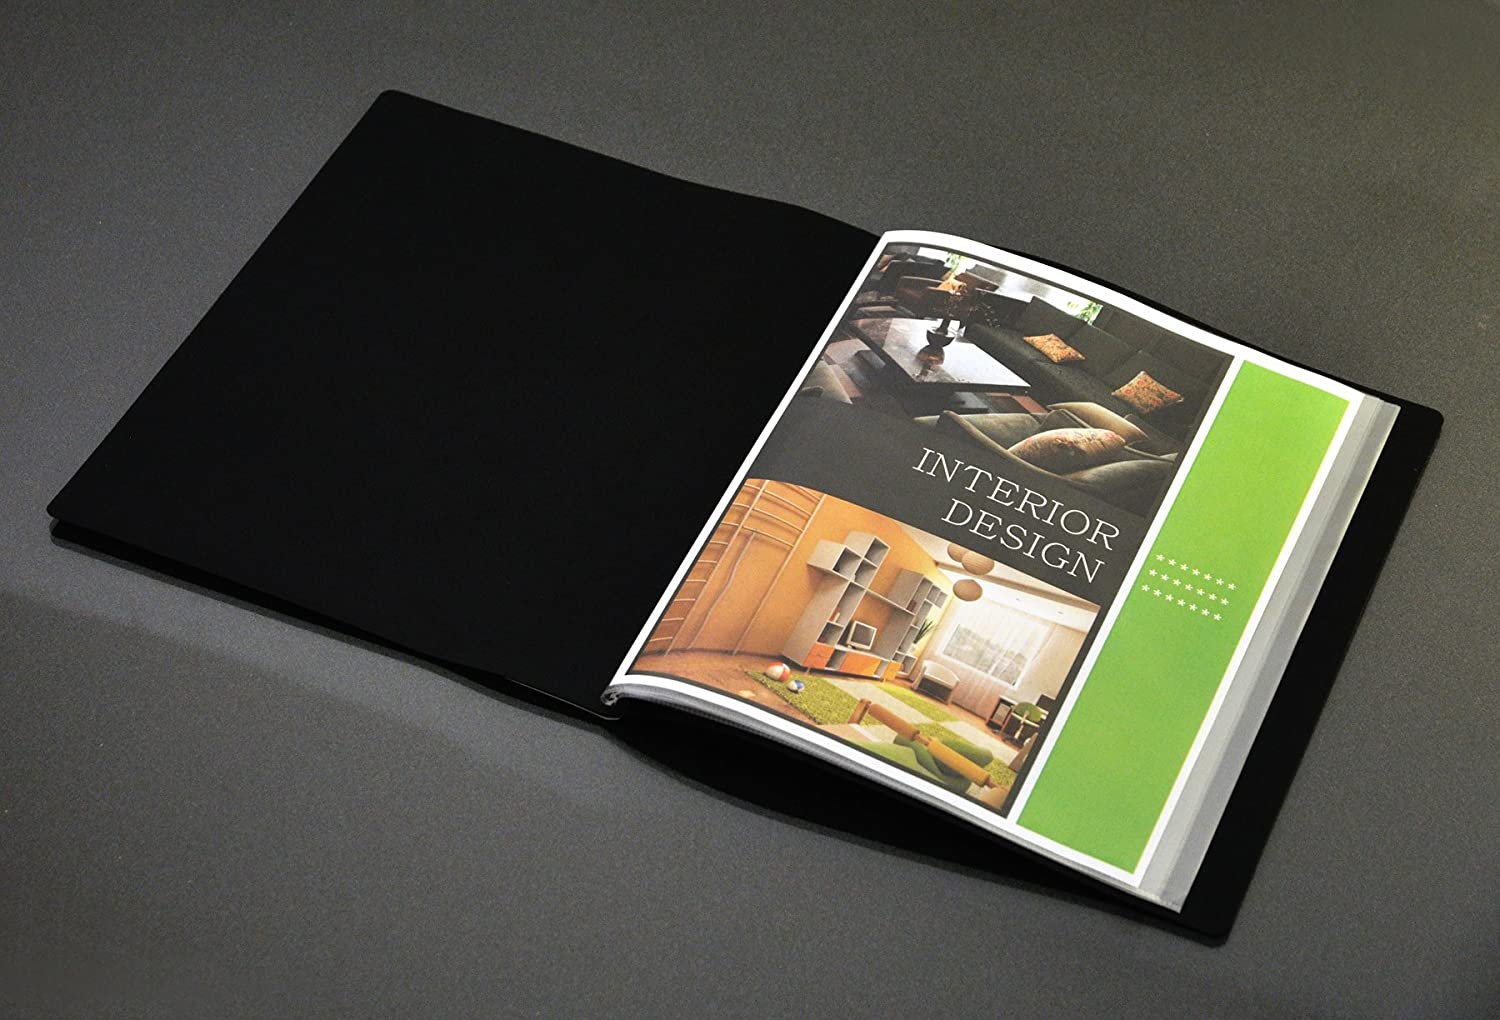 41012-BK Black 1 Book Lion File-N-View Presentation Display Book 12-Pocket